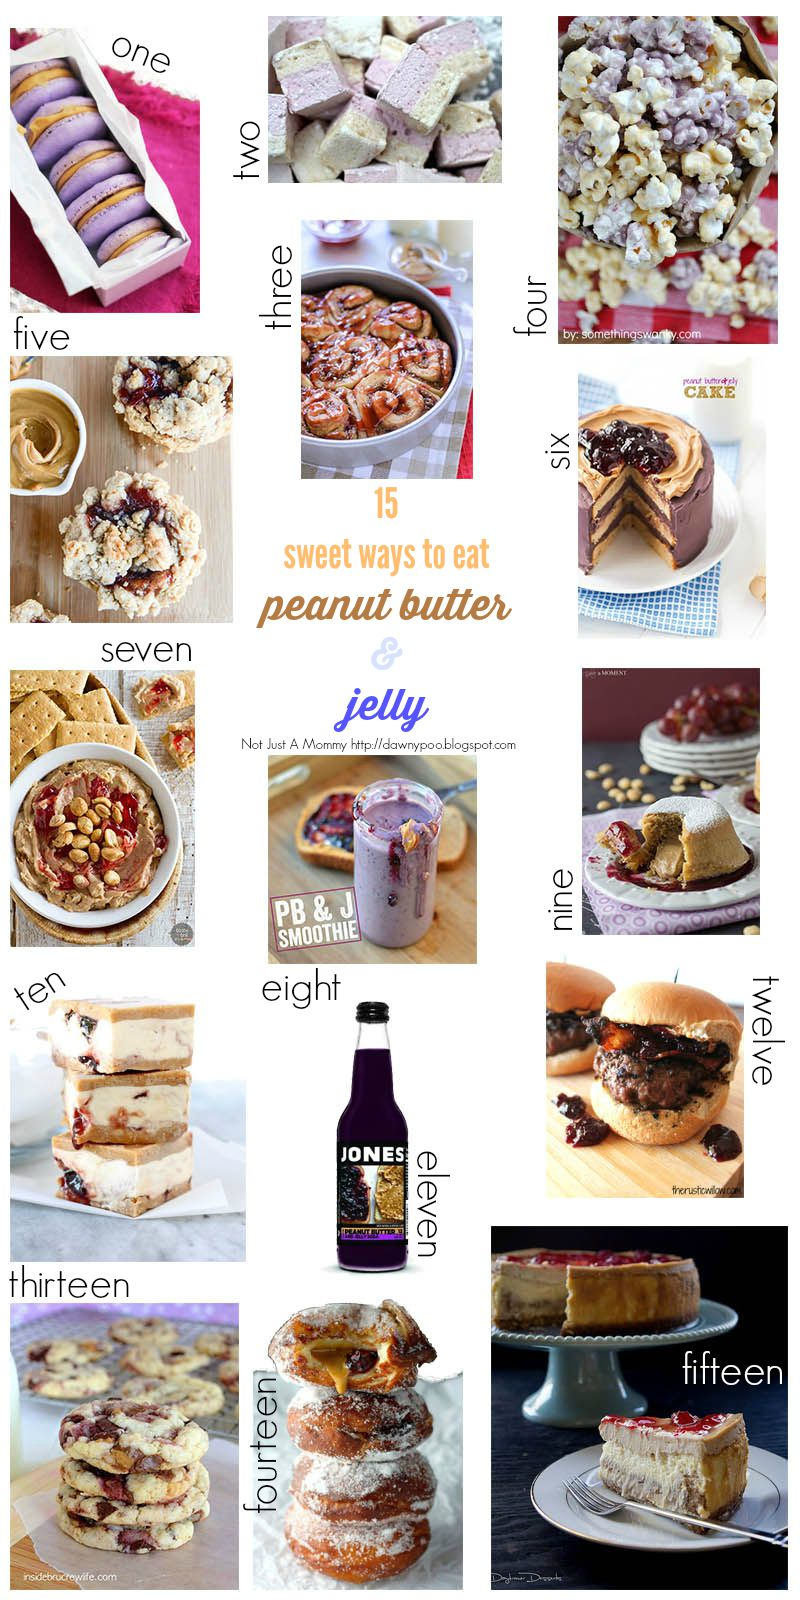 15 sweet ways to eat peanut butter & jelly